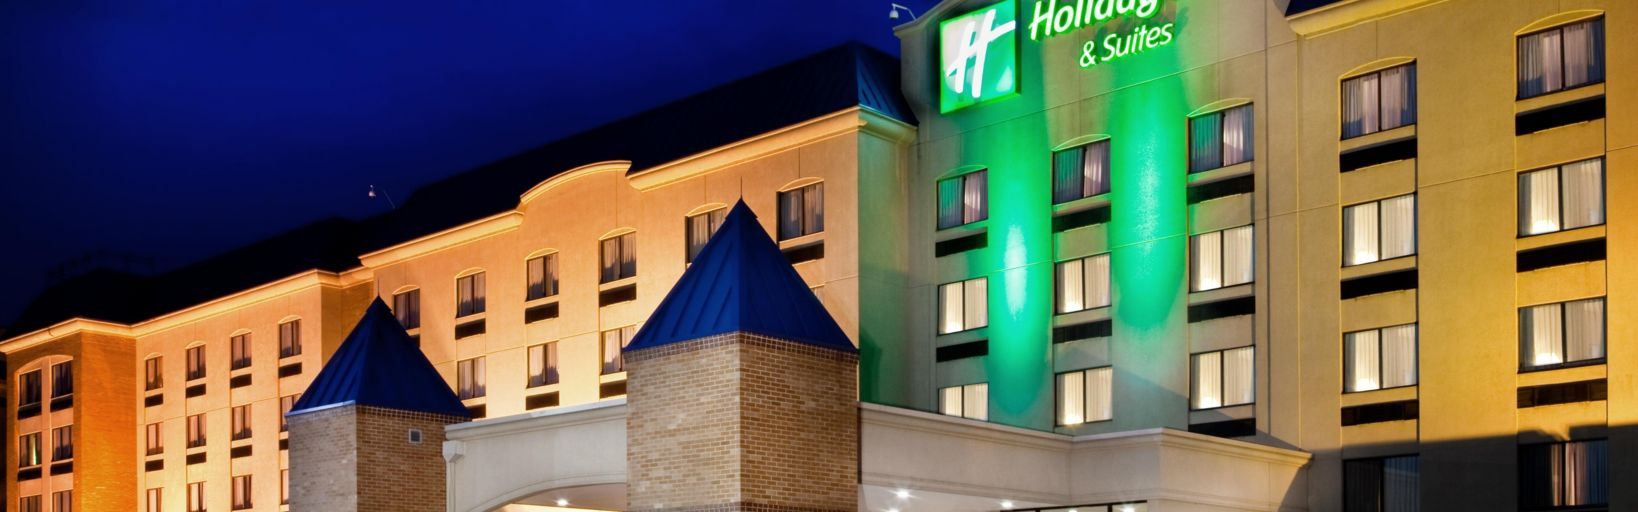 il hotels chicago zoo park near discounts illinois lincoln room xxl see days hotel inn versey